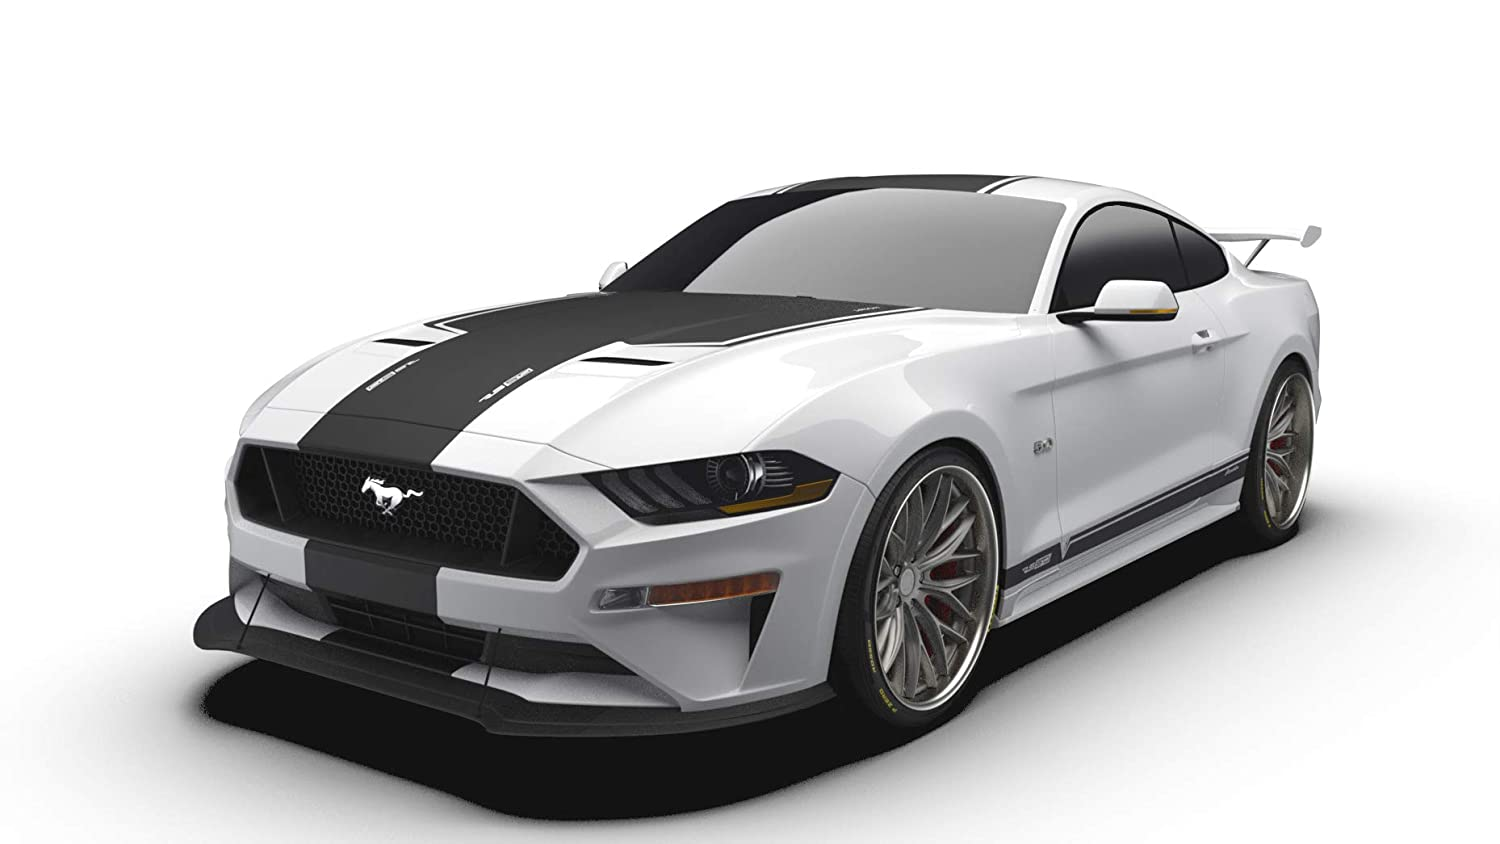 Raceskinz Rs Jargon Edition Premium Vinyl Graphics Kit Matte Black Fits  Ford Mustang Gt Quality Custom Vinyl Stripe Decal Graphic Sticker Body Kit